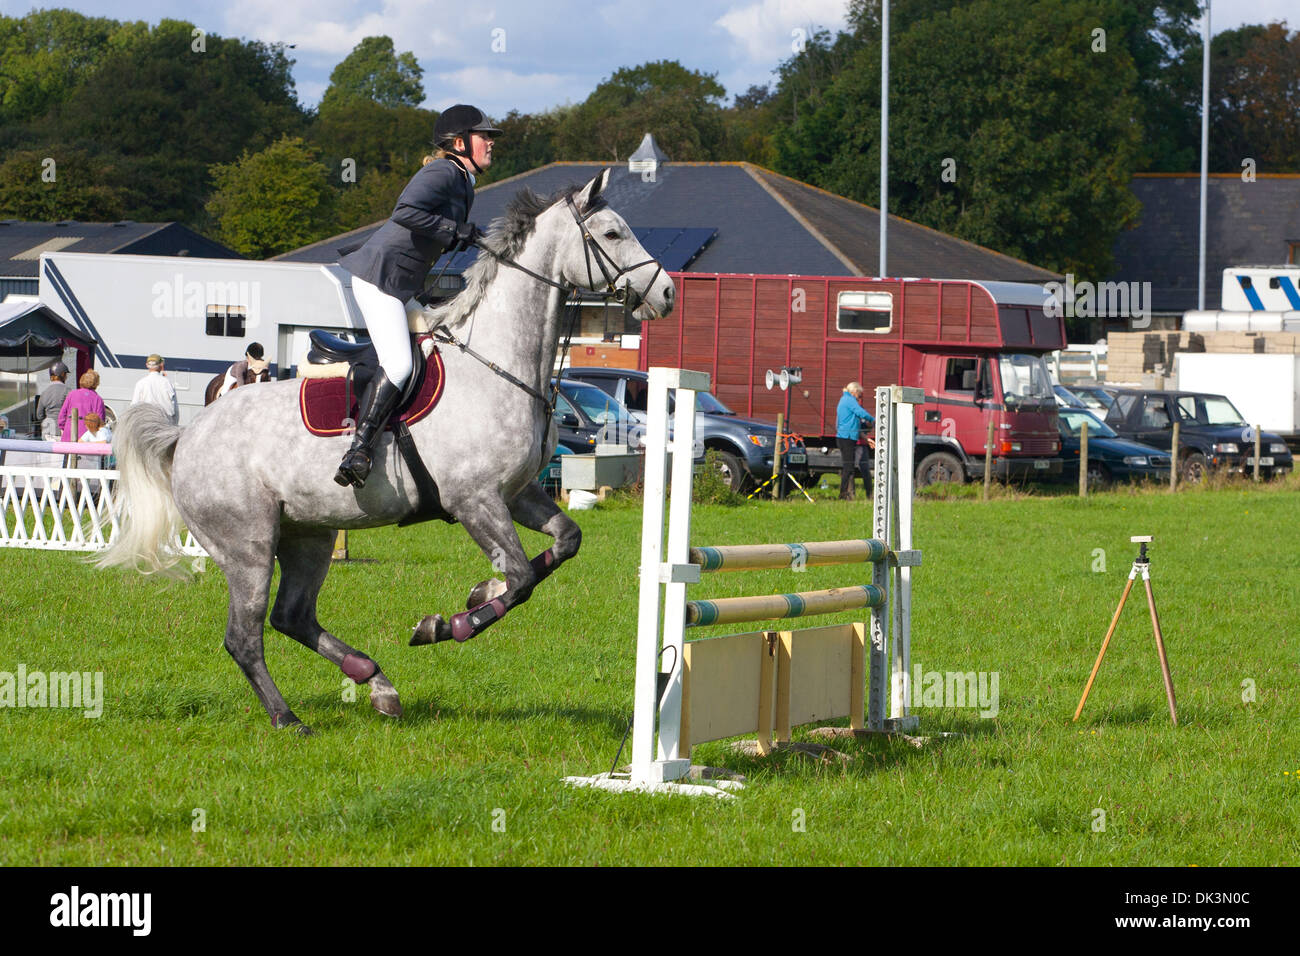 Horse Jumping eventing cross country equine sport jump show case rurale agricole gymkhana gris Godshill Ile de Wight Angleterre UK Photo Stock